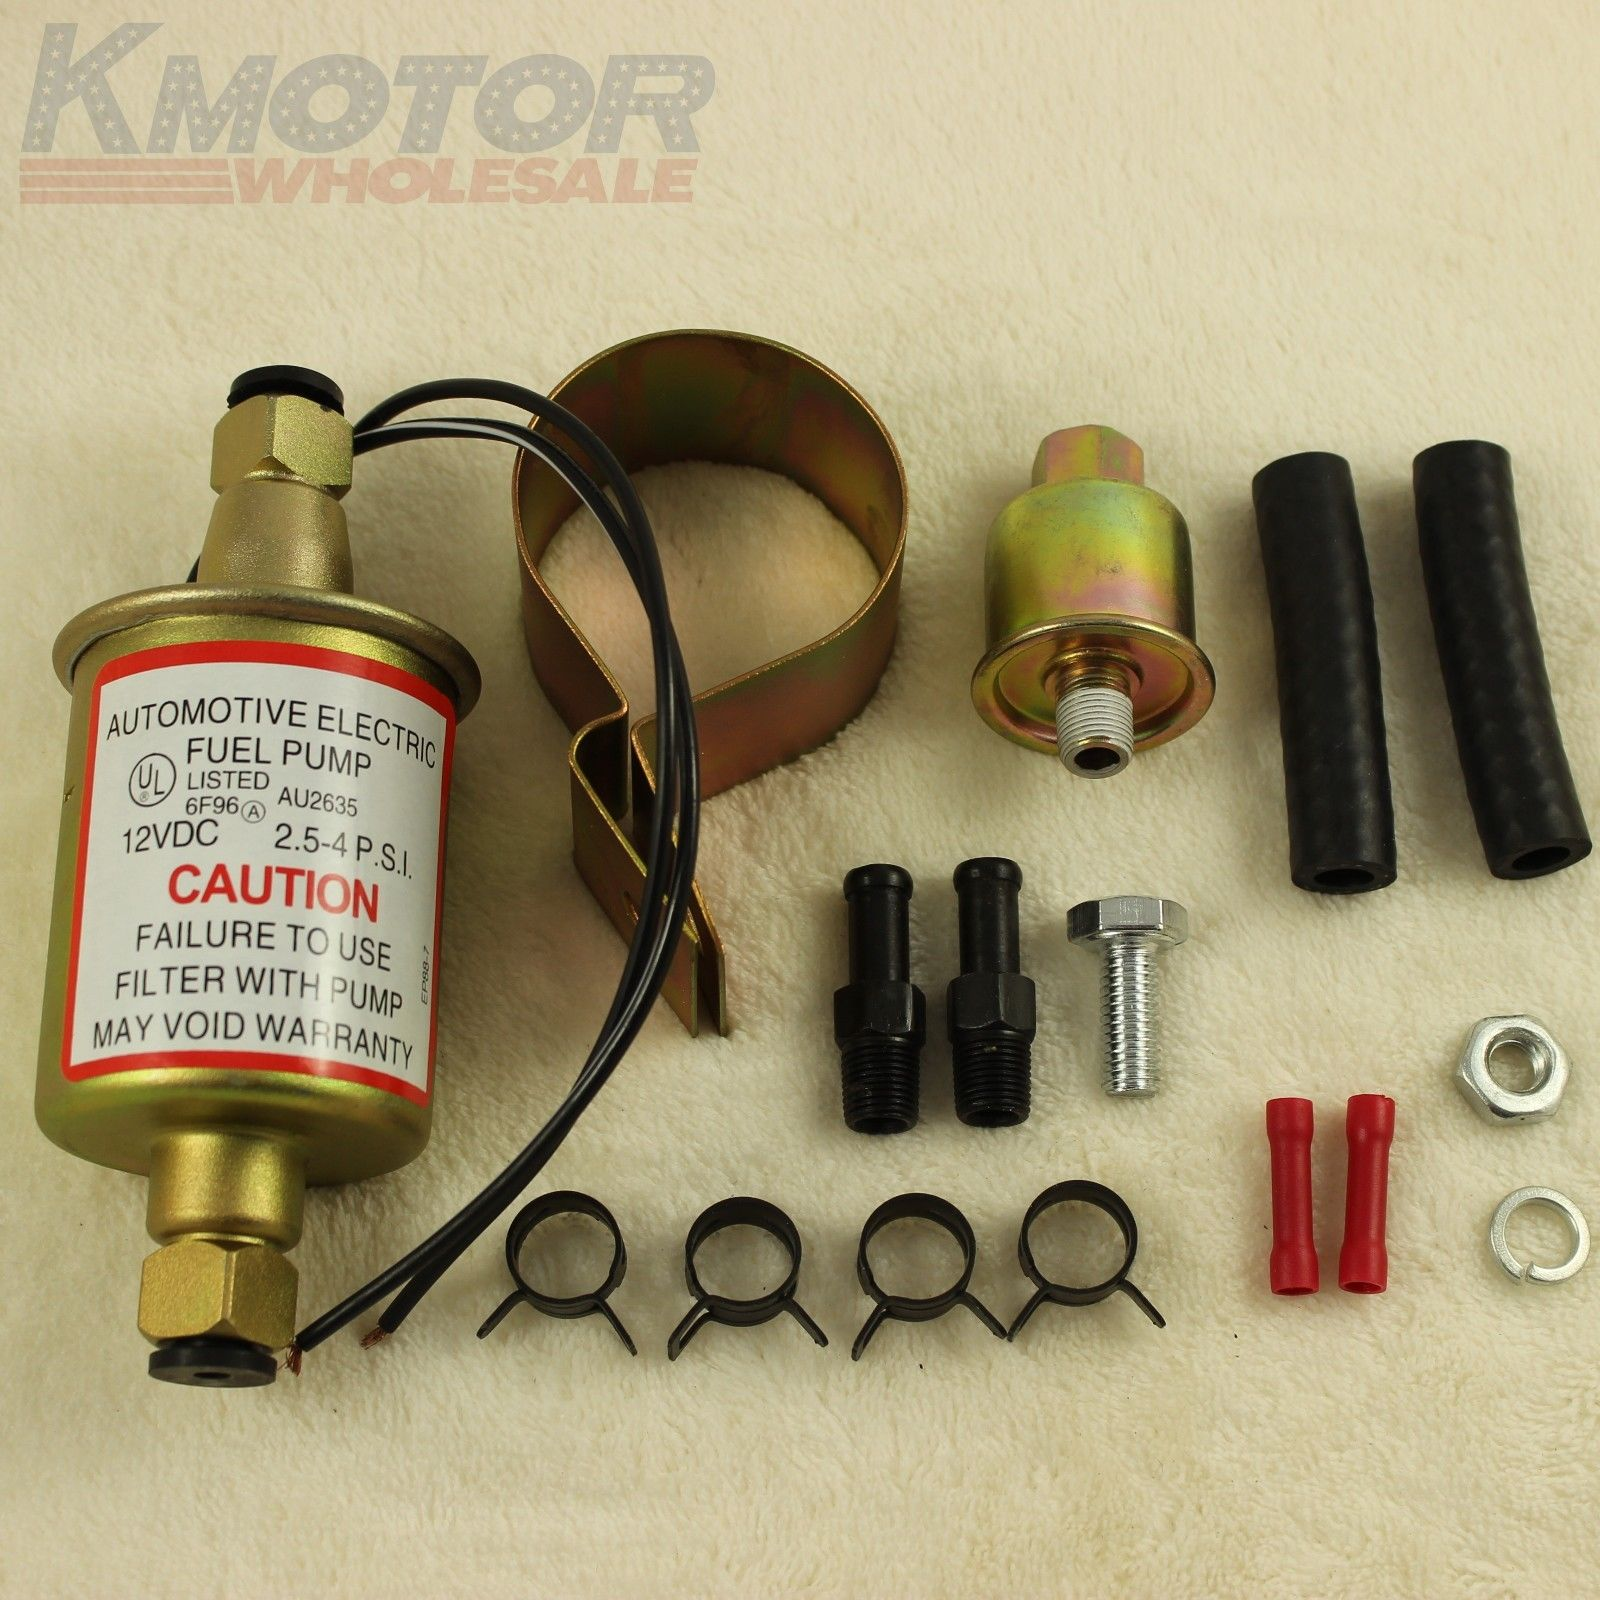 Click image for larger version  Name:fuel pump.jpg Views:93 Size:306.7 KB ID:168855